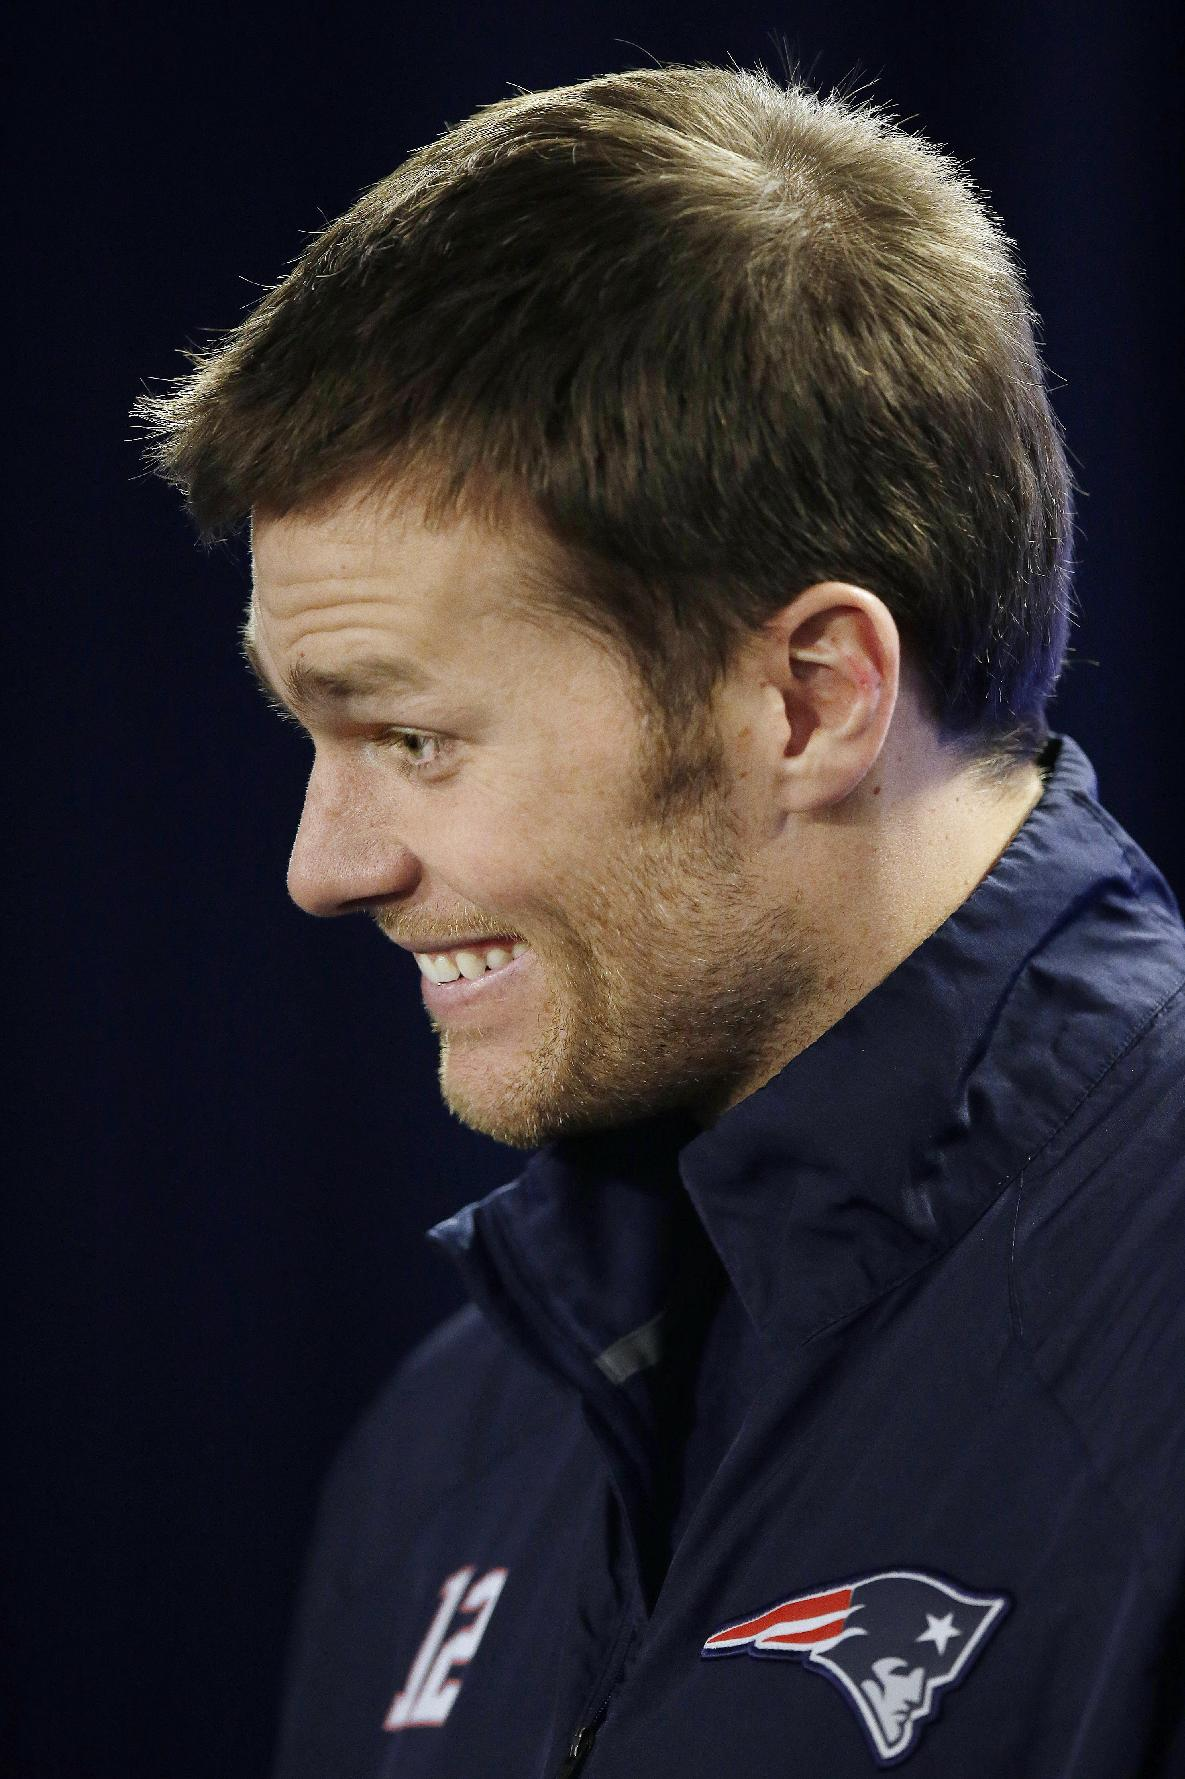 New England Patriots quarterback Tom Brady reacts to a reporter's question during an NFL football media availability at the team's training facility in Foxborough, Mass., Friday, Jan. 17, 2014. The Patriots are scheduled to play the Denver Broncos in the AFC championship game on Sunday in Denver